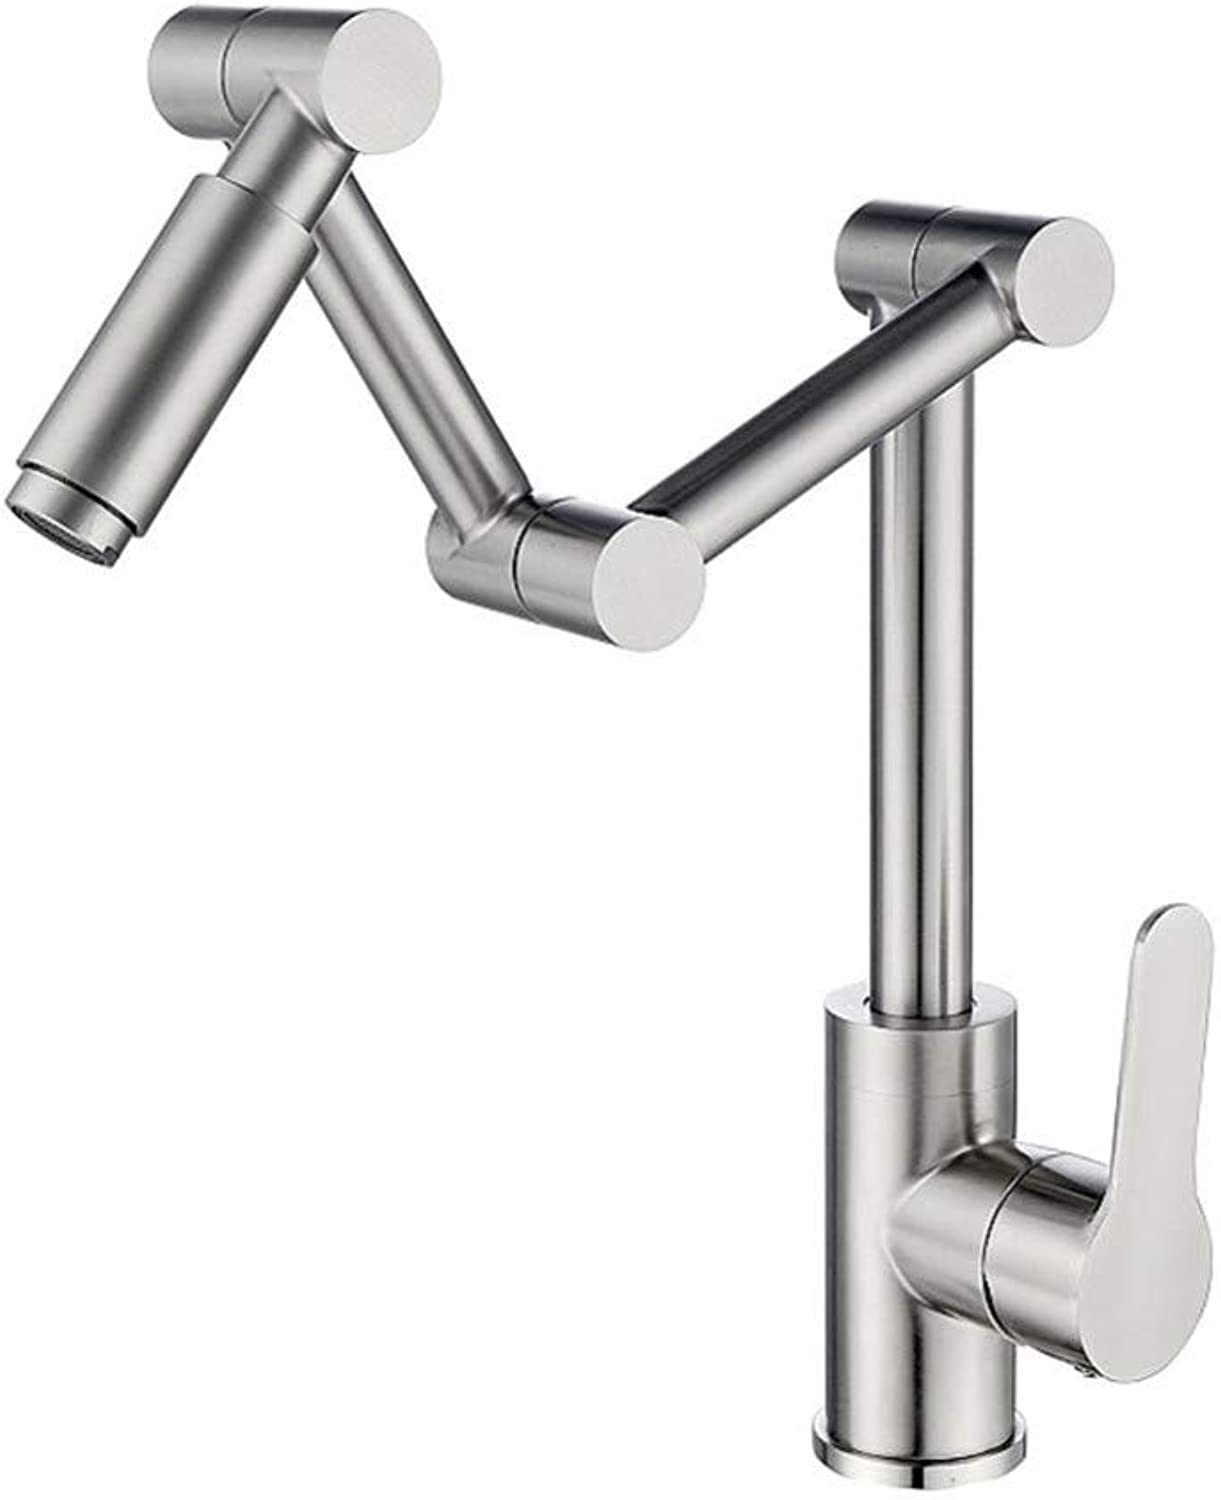 360° redating Faucet Retro Faucetcold Faucet Sitting redary Faucet Laundry Pool Extension Faucet